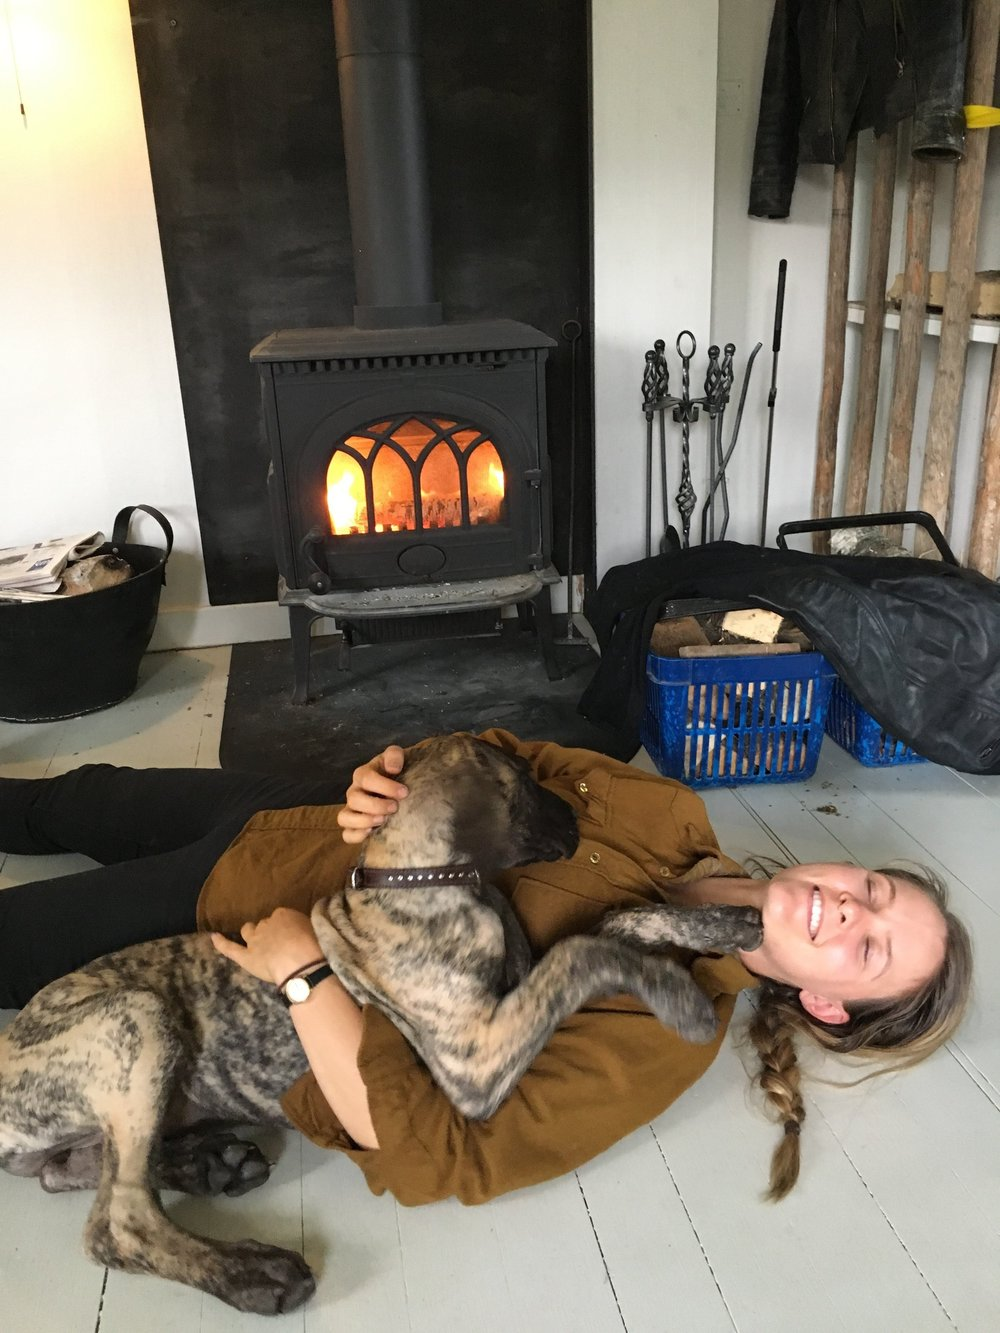 Warming up and drying off by the fire with Nova